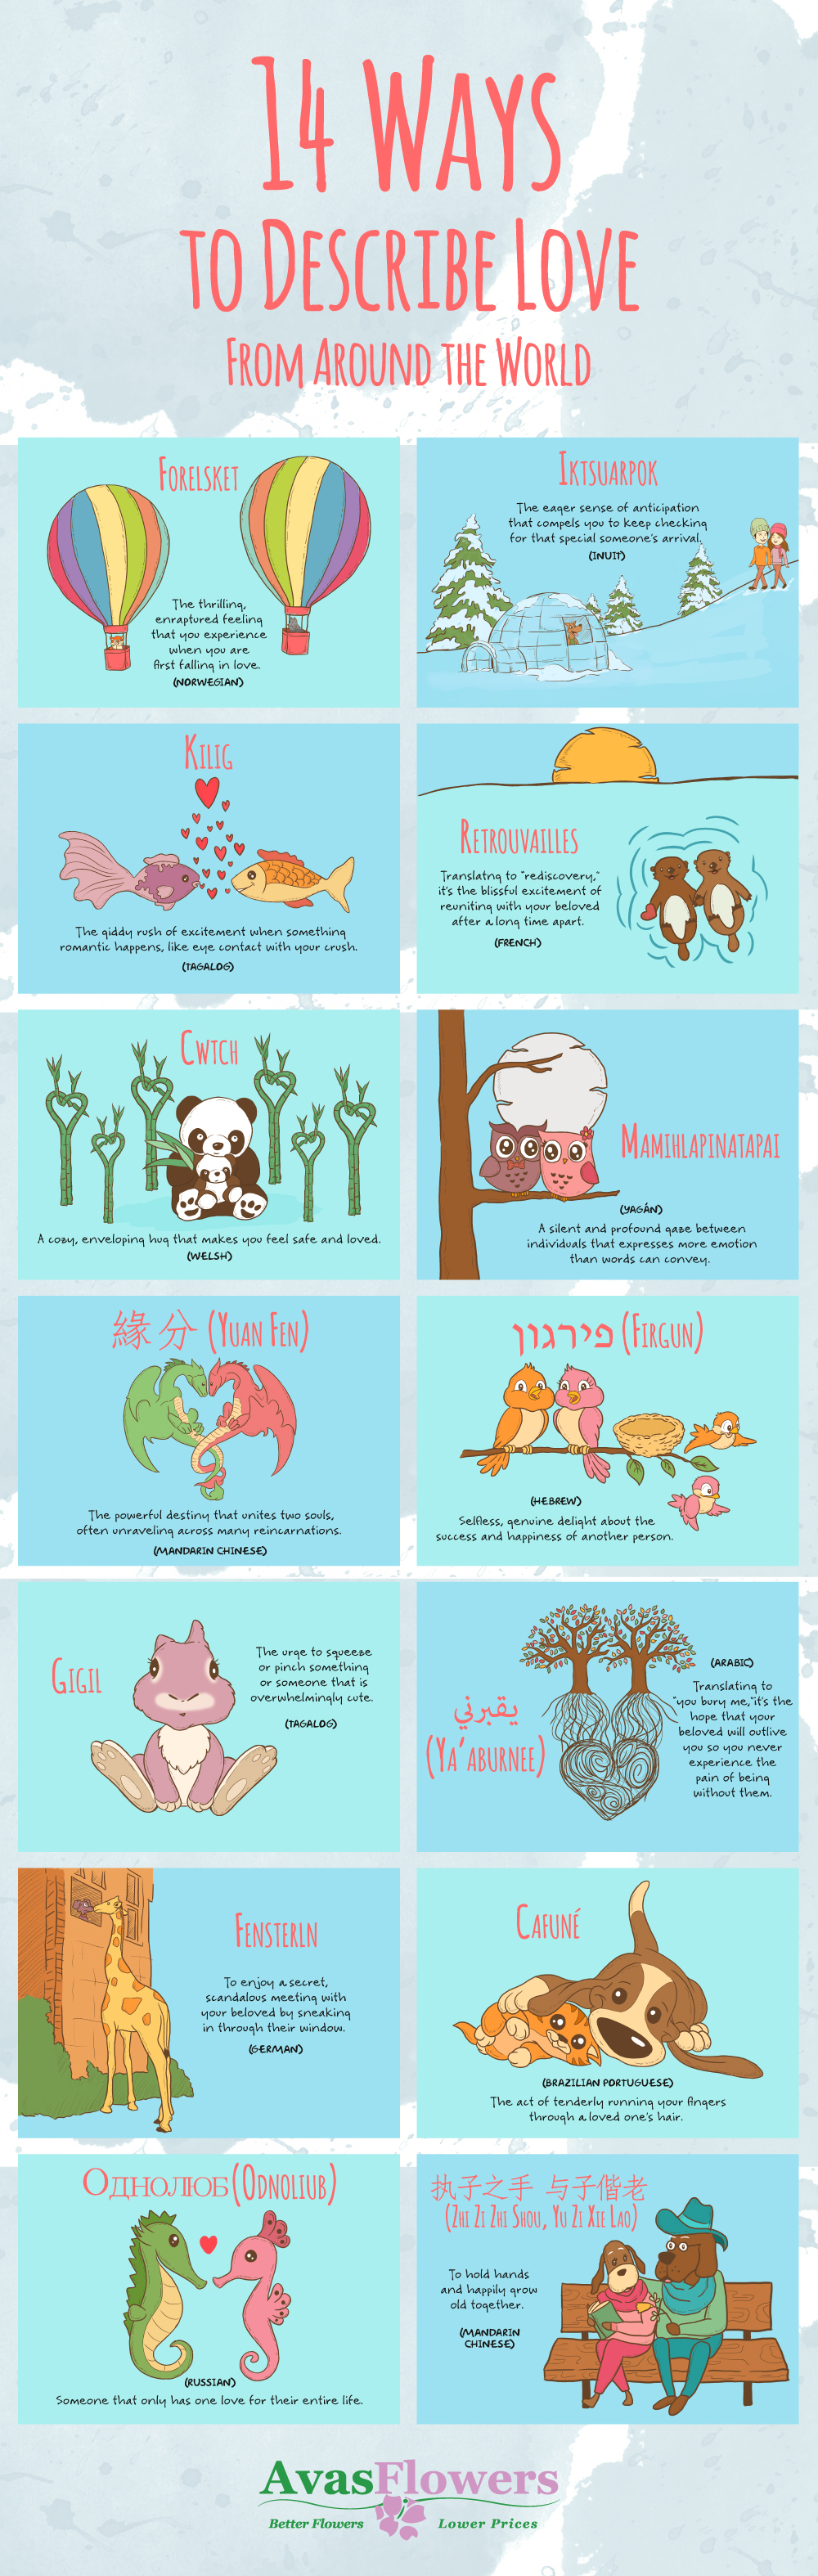 14 Ways to Describe Love From Around the World - Avasflowers.net - Infographic